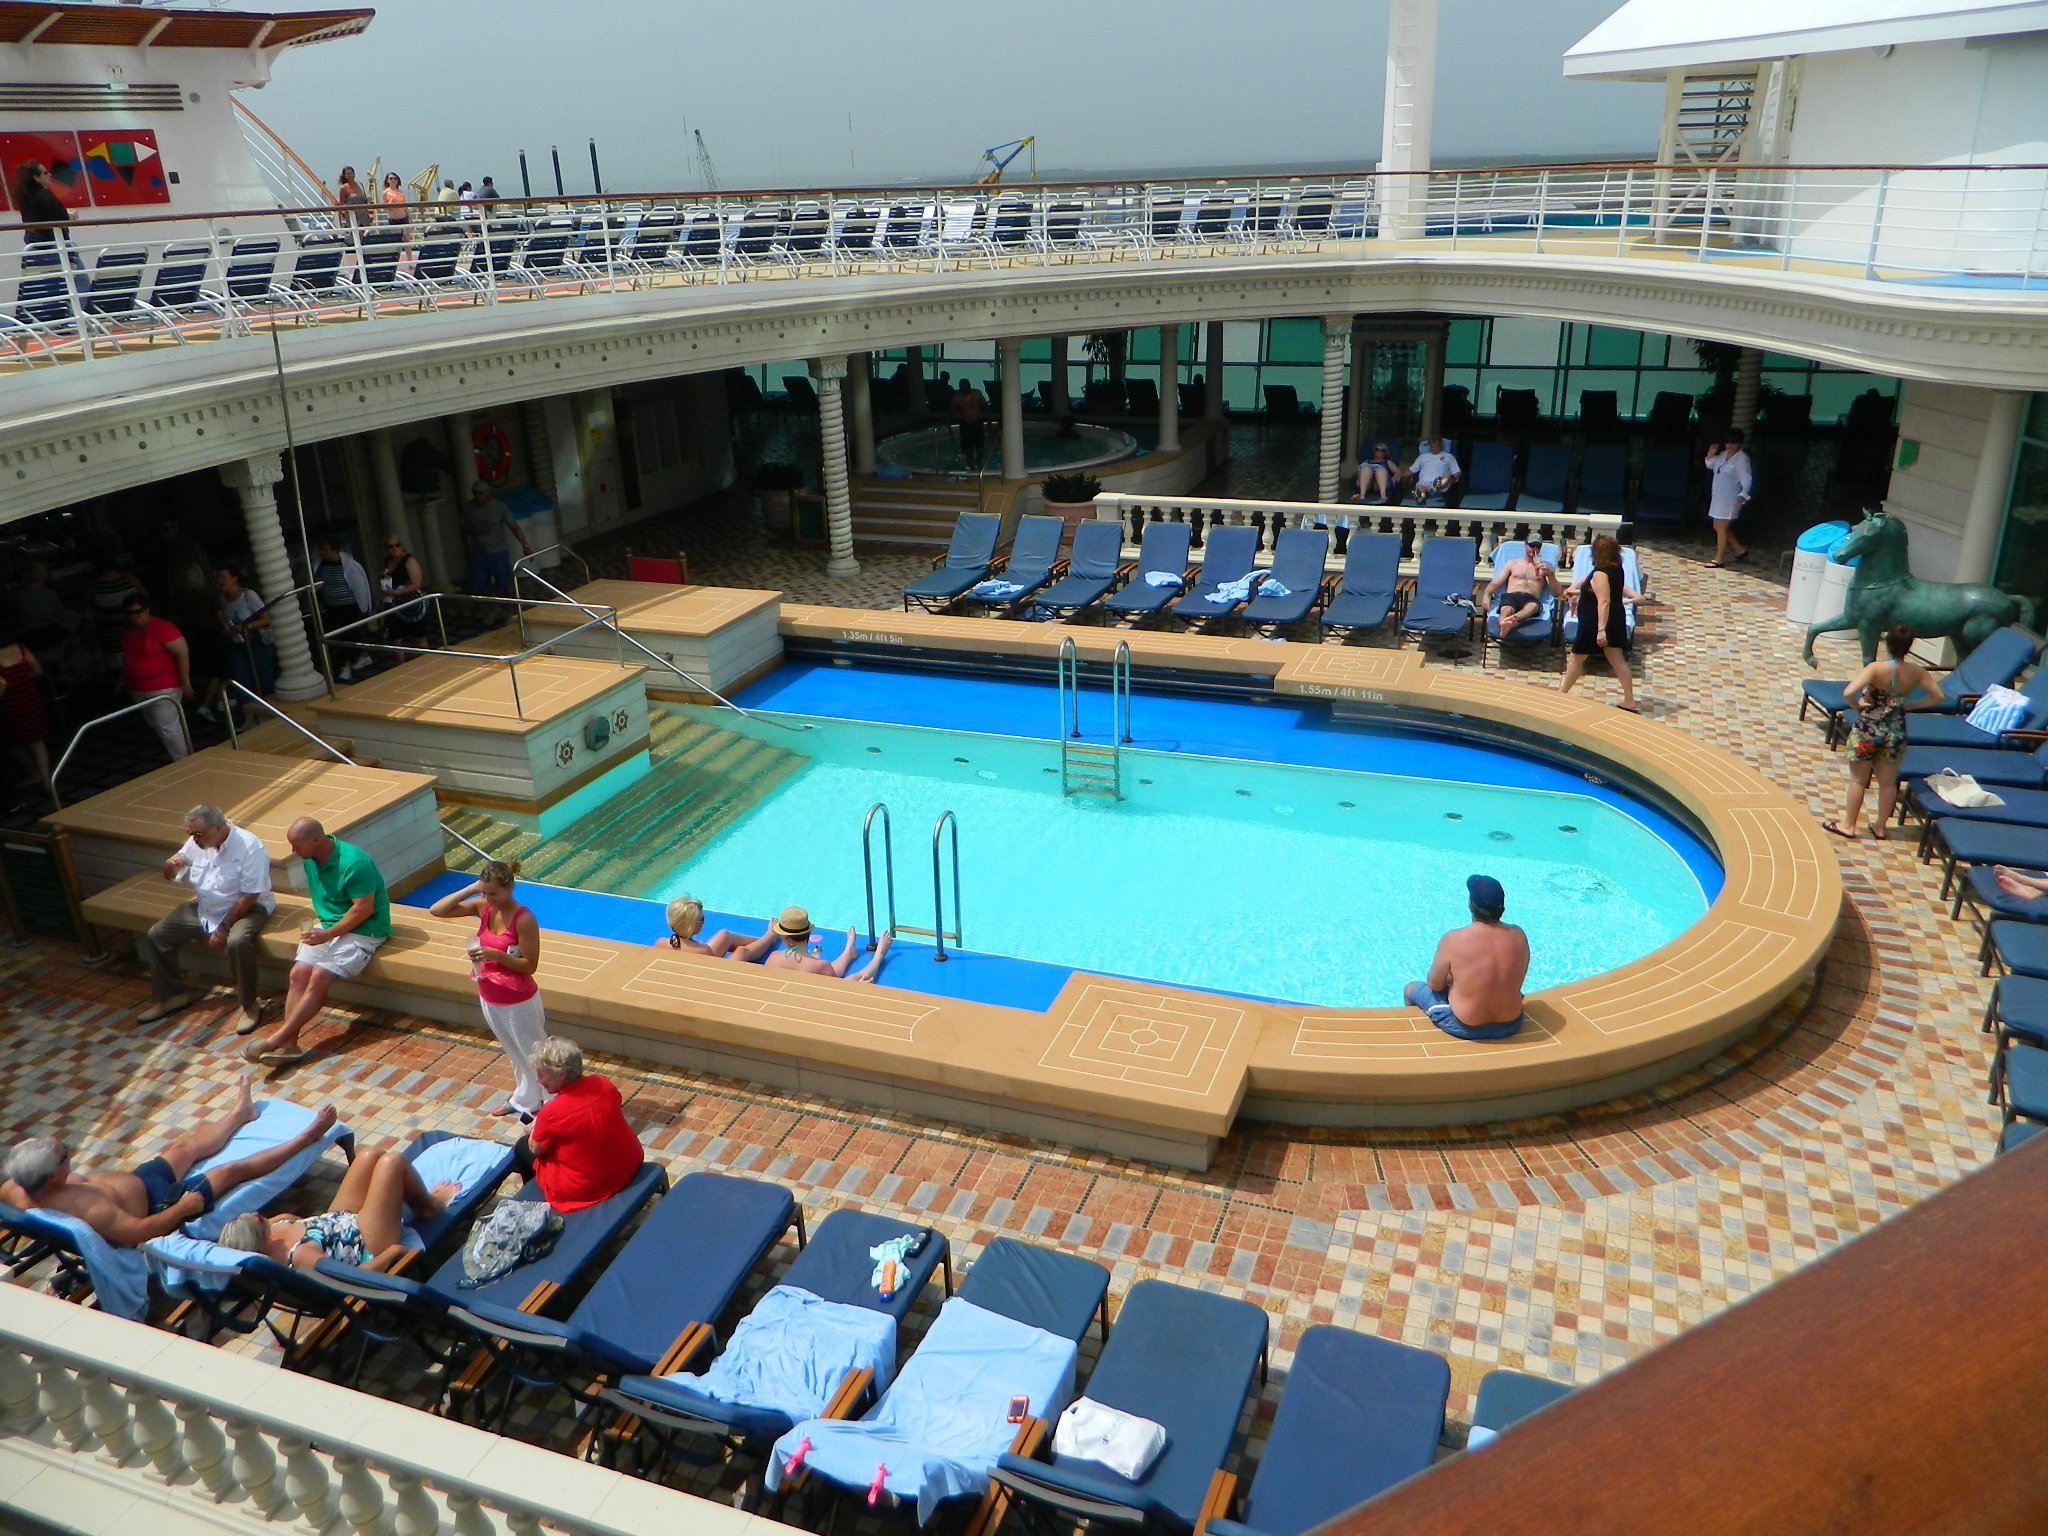 Cruise ship dining cruise escapes blog navigator of the seas solarium on deck 11 for adults only baanklon Images